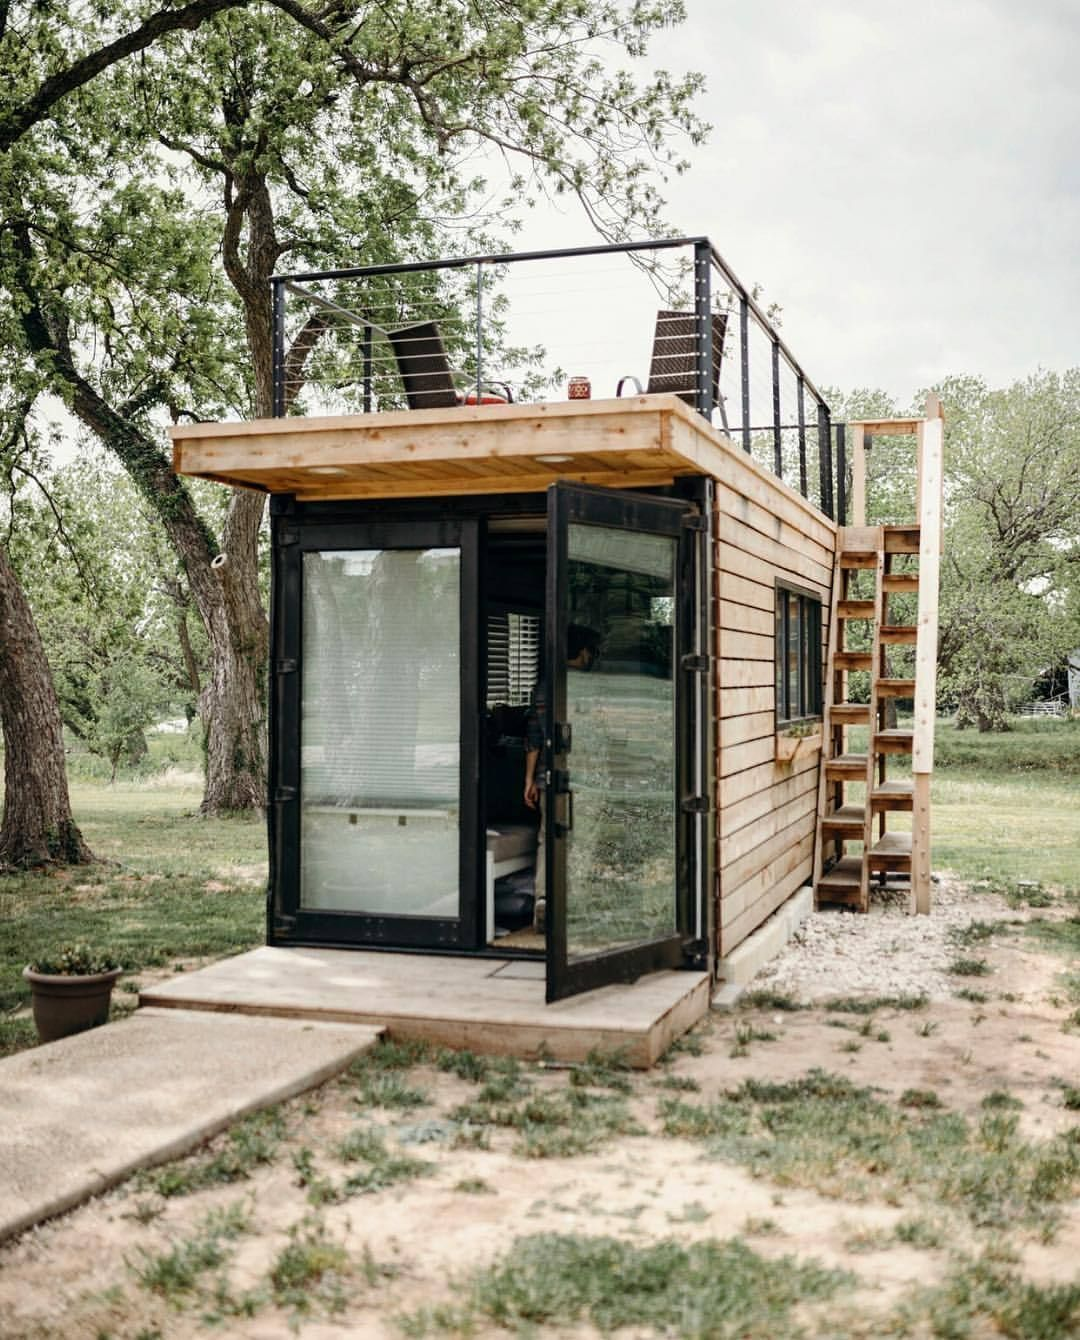 Less indoor, more outdoor. 20' container turned tiny house with rooftop deck. Built by @cargo_home. Photo by @alexis_mccurdy (at Waco, Texas)